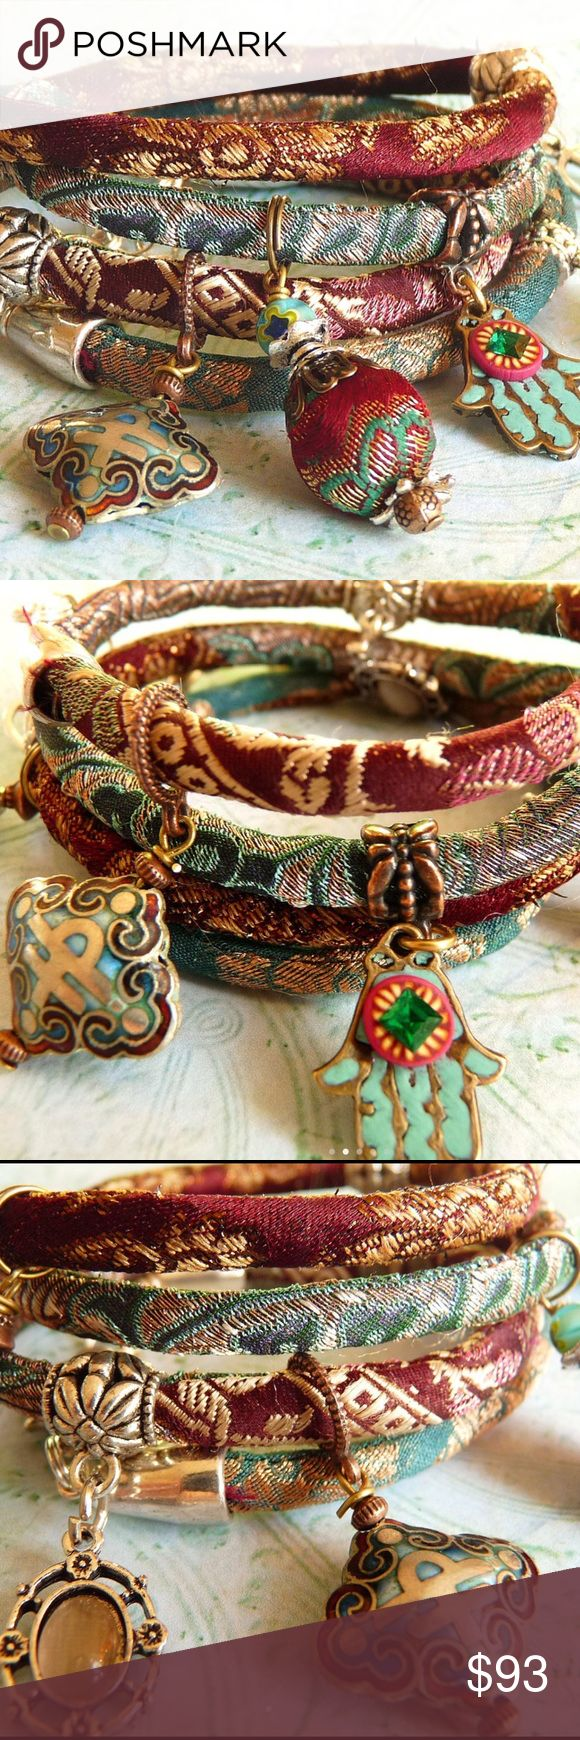 THE ULTIMATE HANDMADE SILK WRAP BRACELET, BRILLANT RED WINE BROCADE WRAP BRACELET Made to order  with silver plated teal ornaments, original pure silk brocade from India and strengthened with a cotton cord inside.  Colors are red wine with some shades of teal, while vintage sari silk is used for the border.  The charms and pendants are chosen from a large bead collection from the designer. The medallion pendant and polymer clay object is also made by the designer.  The total length is 30…